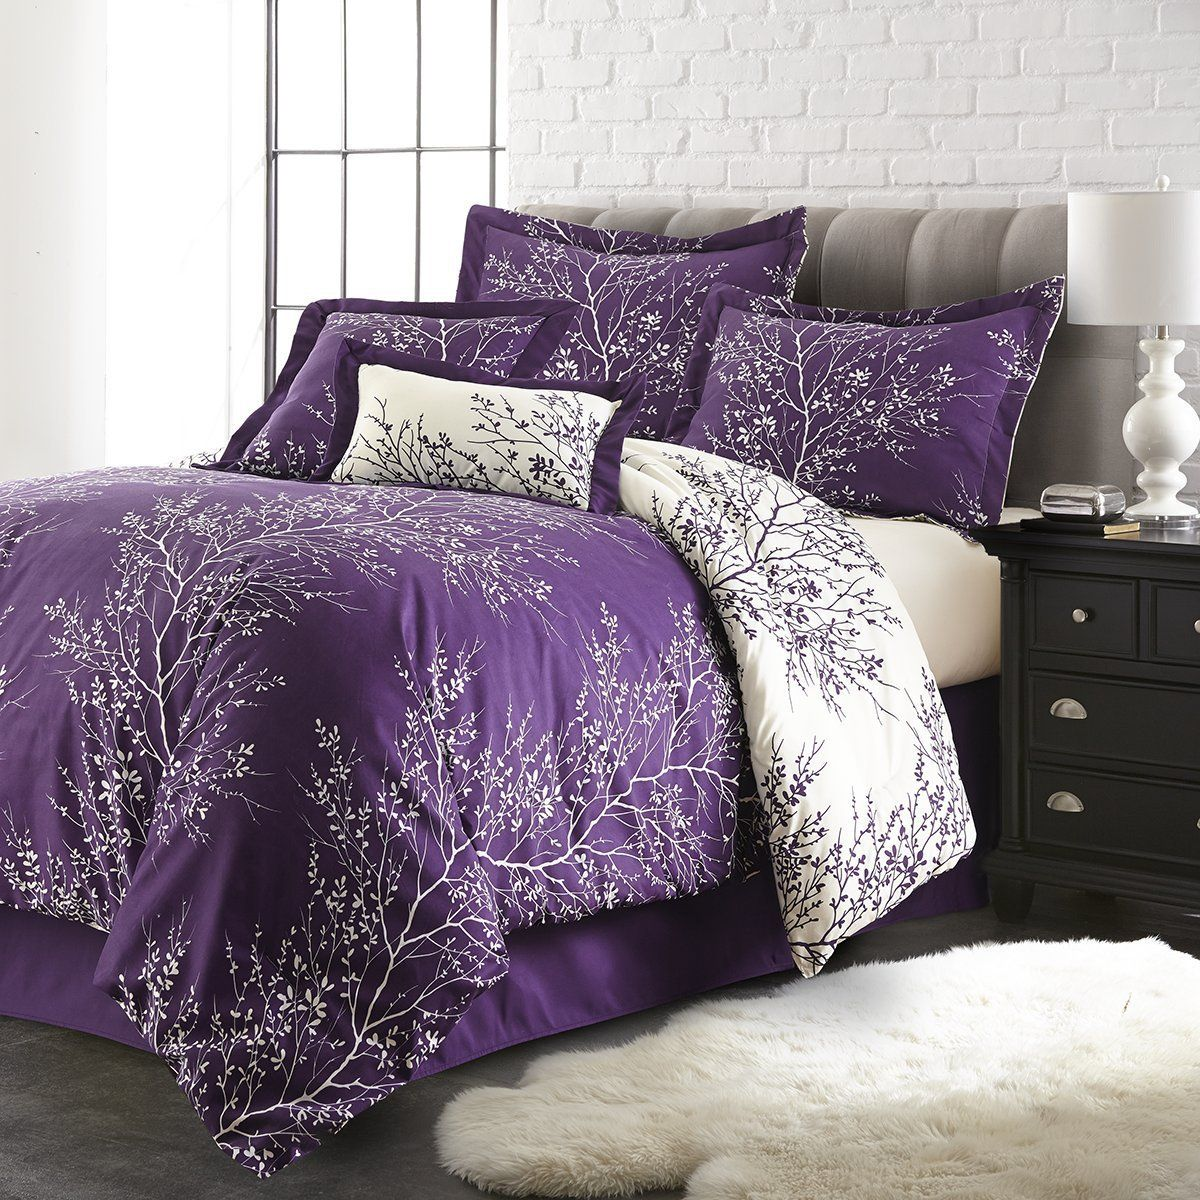 Spirit Linen Hotel 5Th Ave 6Piece Foliage Collection